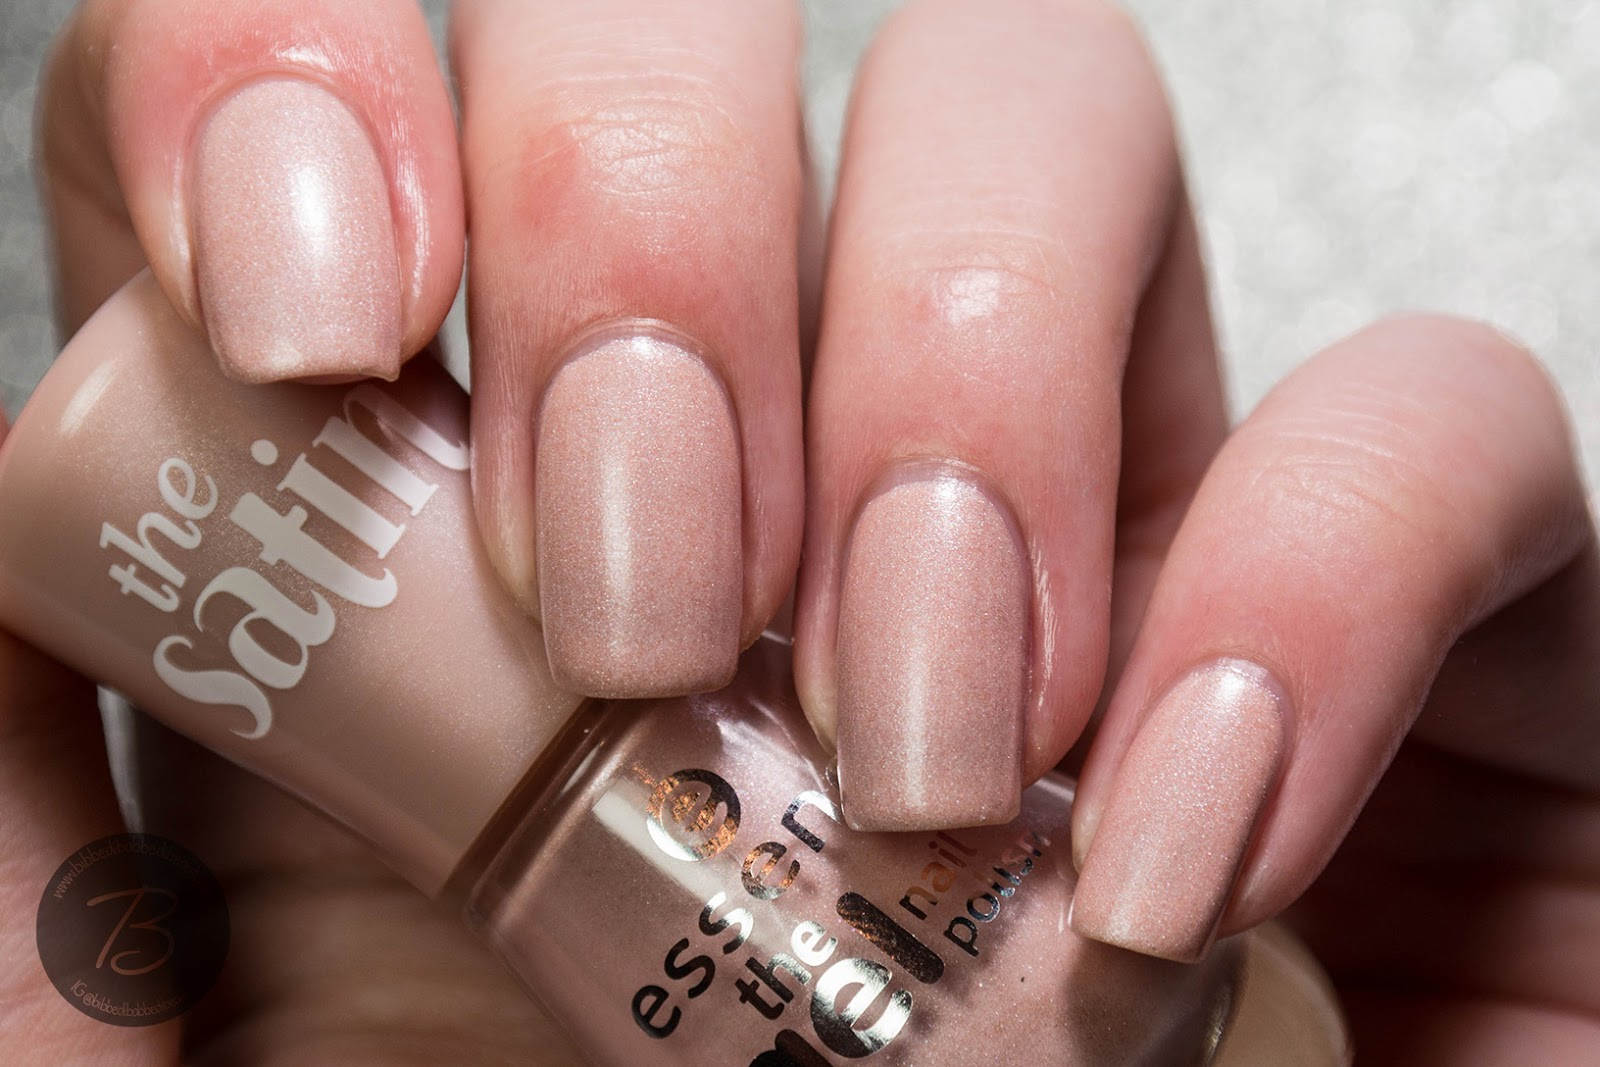 Essence The Gel Nail Polish 98 Pure Beauty - Absolute cycle